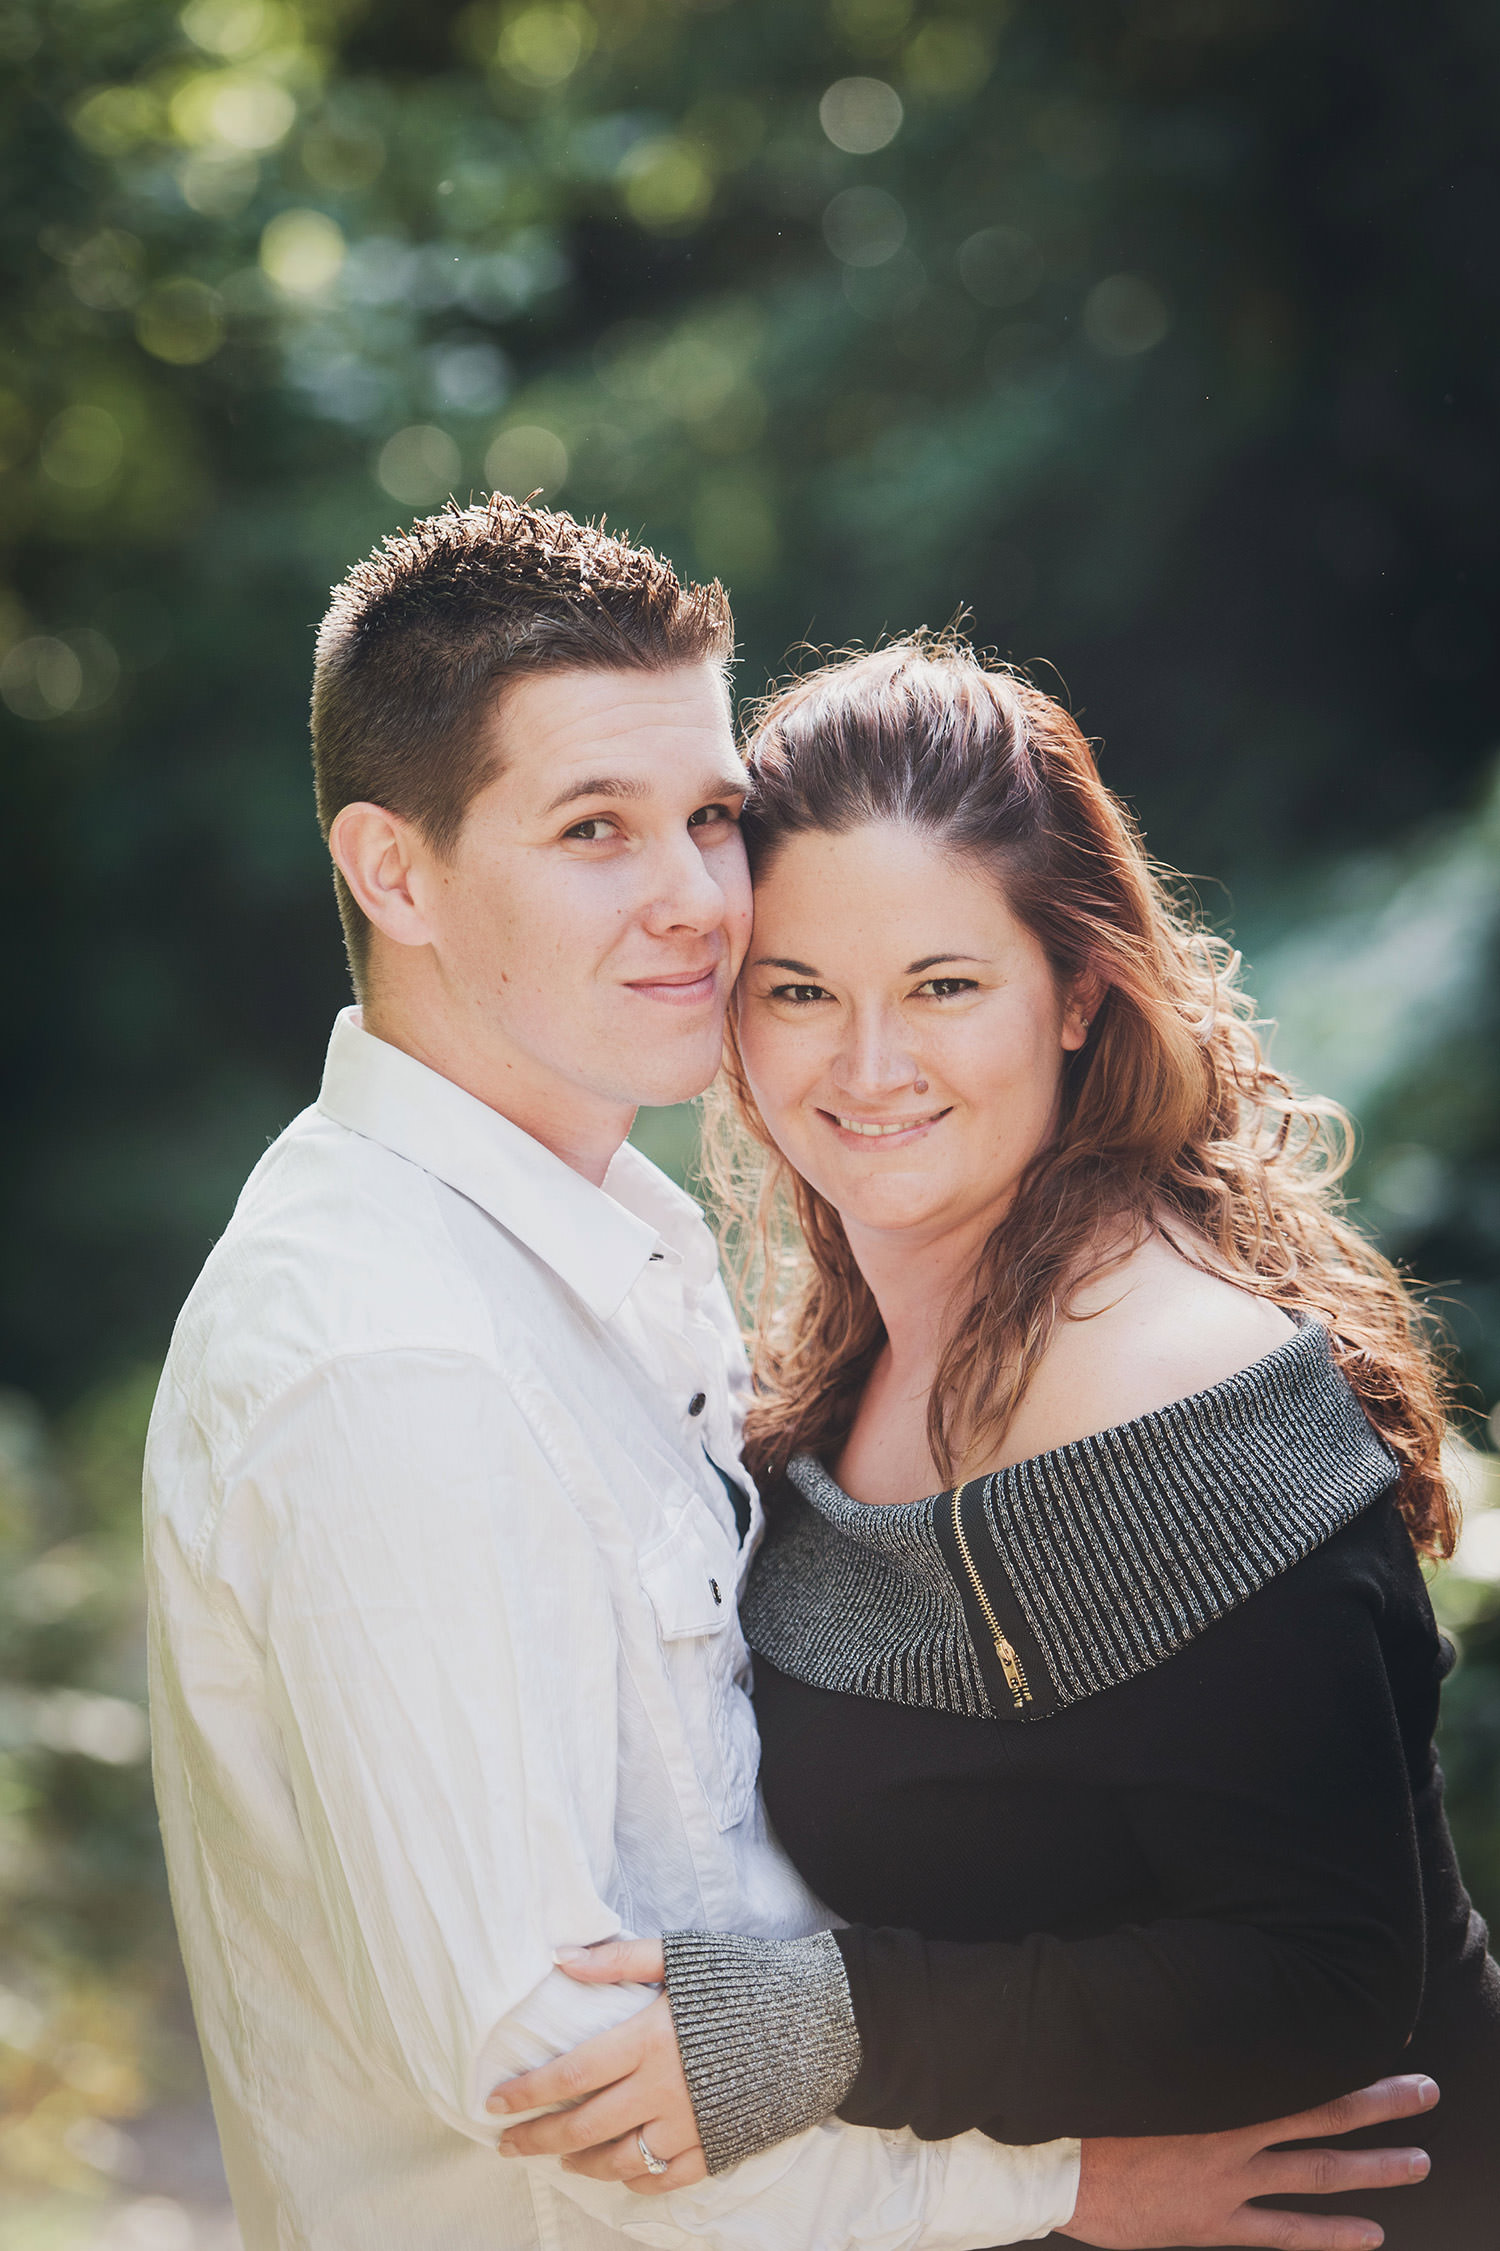 Wedding photographer in Dublin and Wicklow